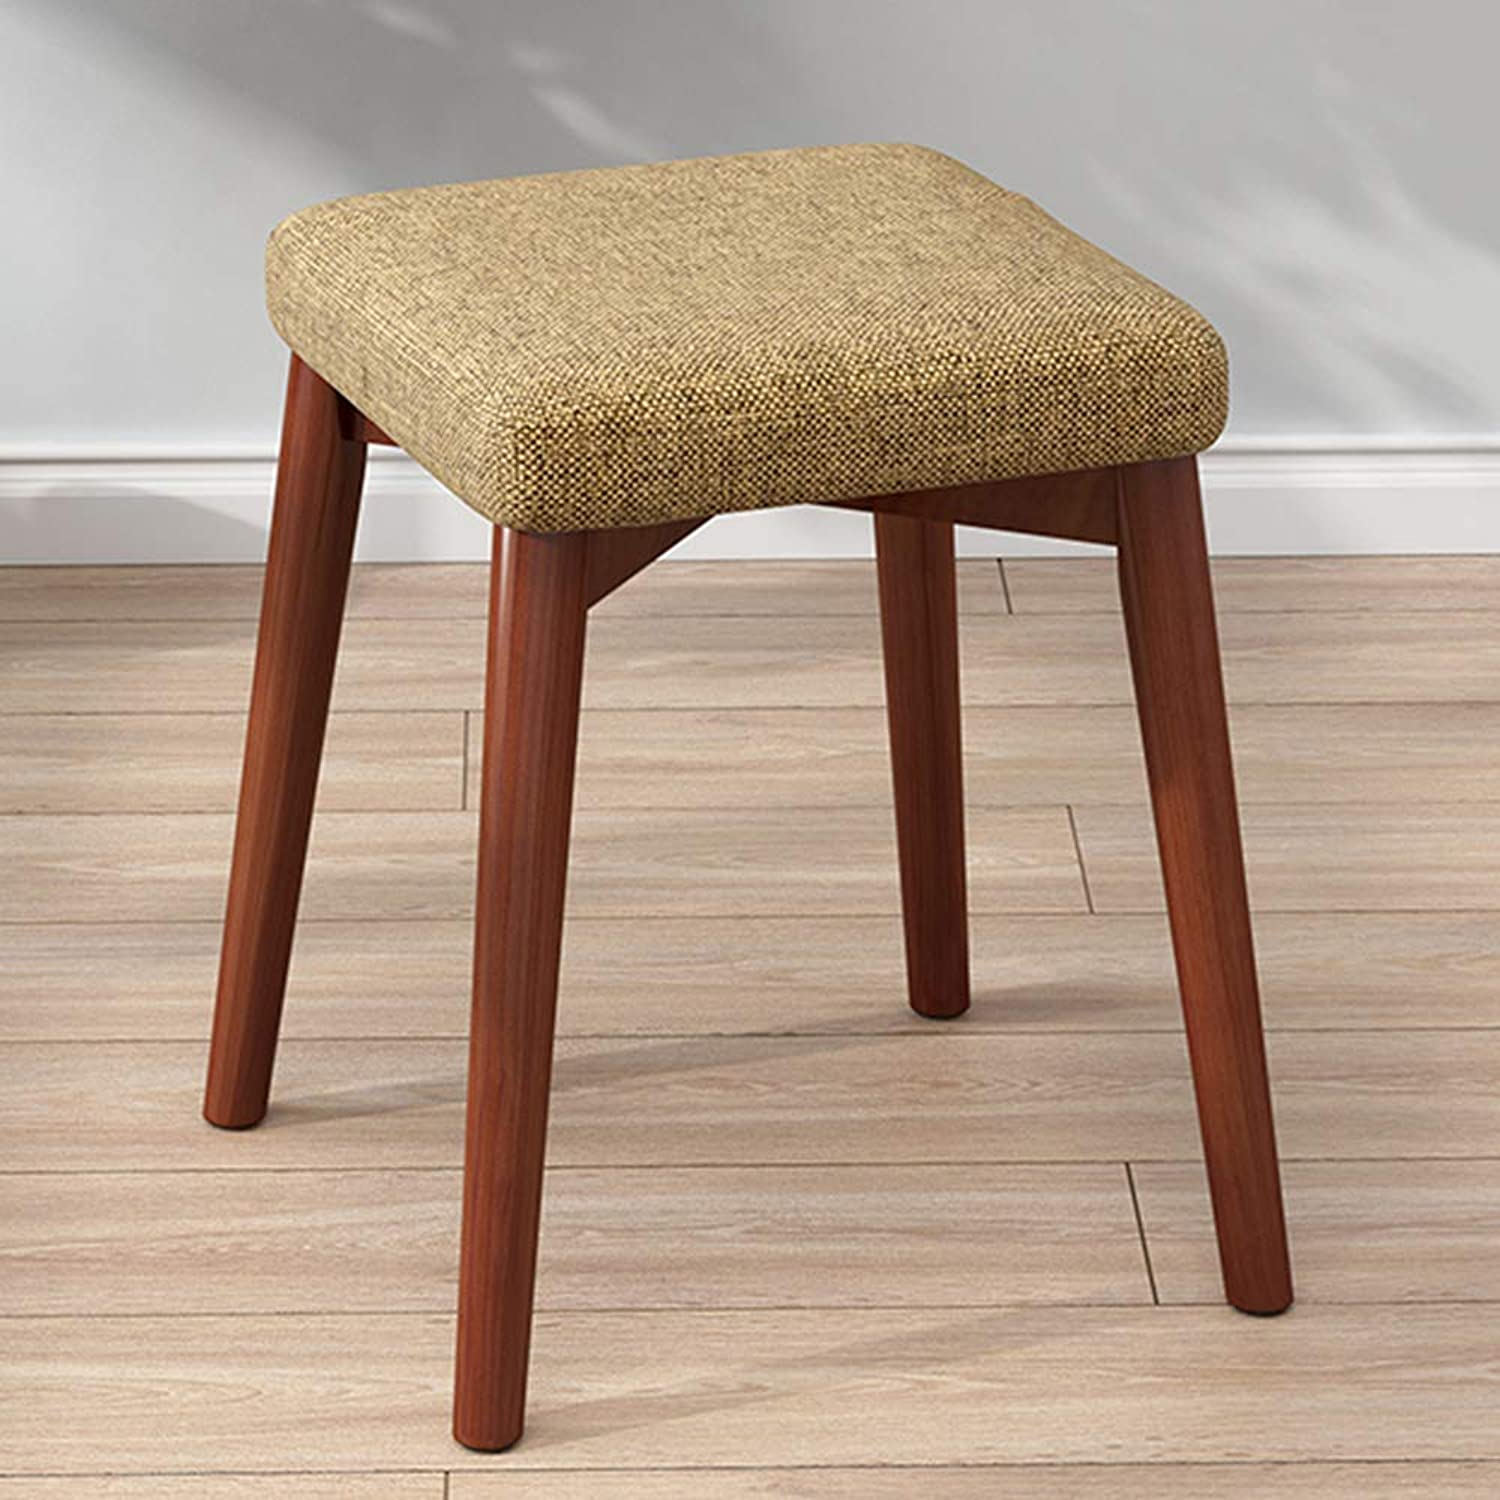 ZXQZ Stool Household Solid Wood Stool 31X43CM Fabric Sofa Square Stool A Variety of colors Optional (color   A1 )